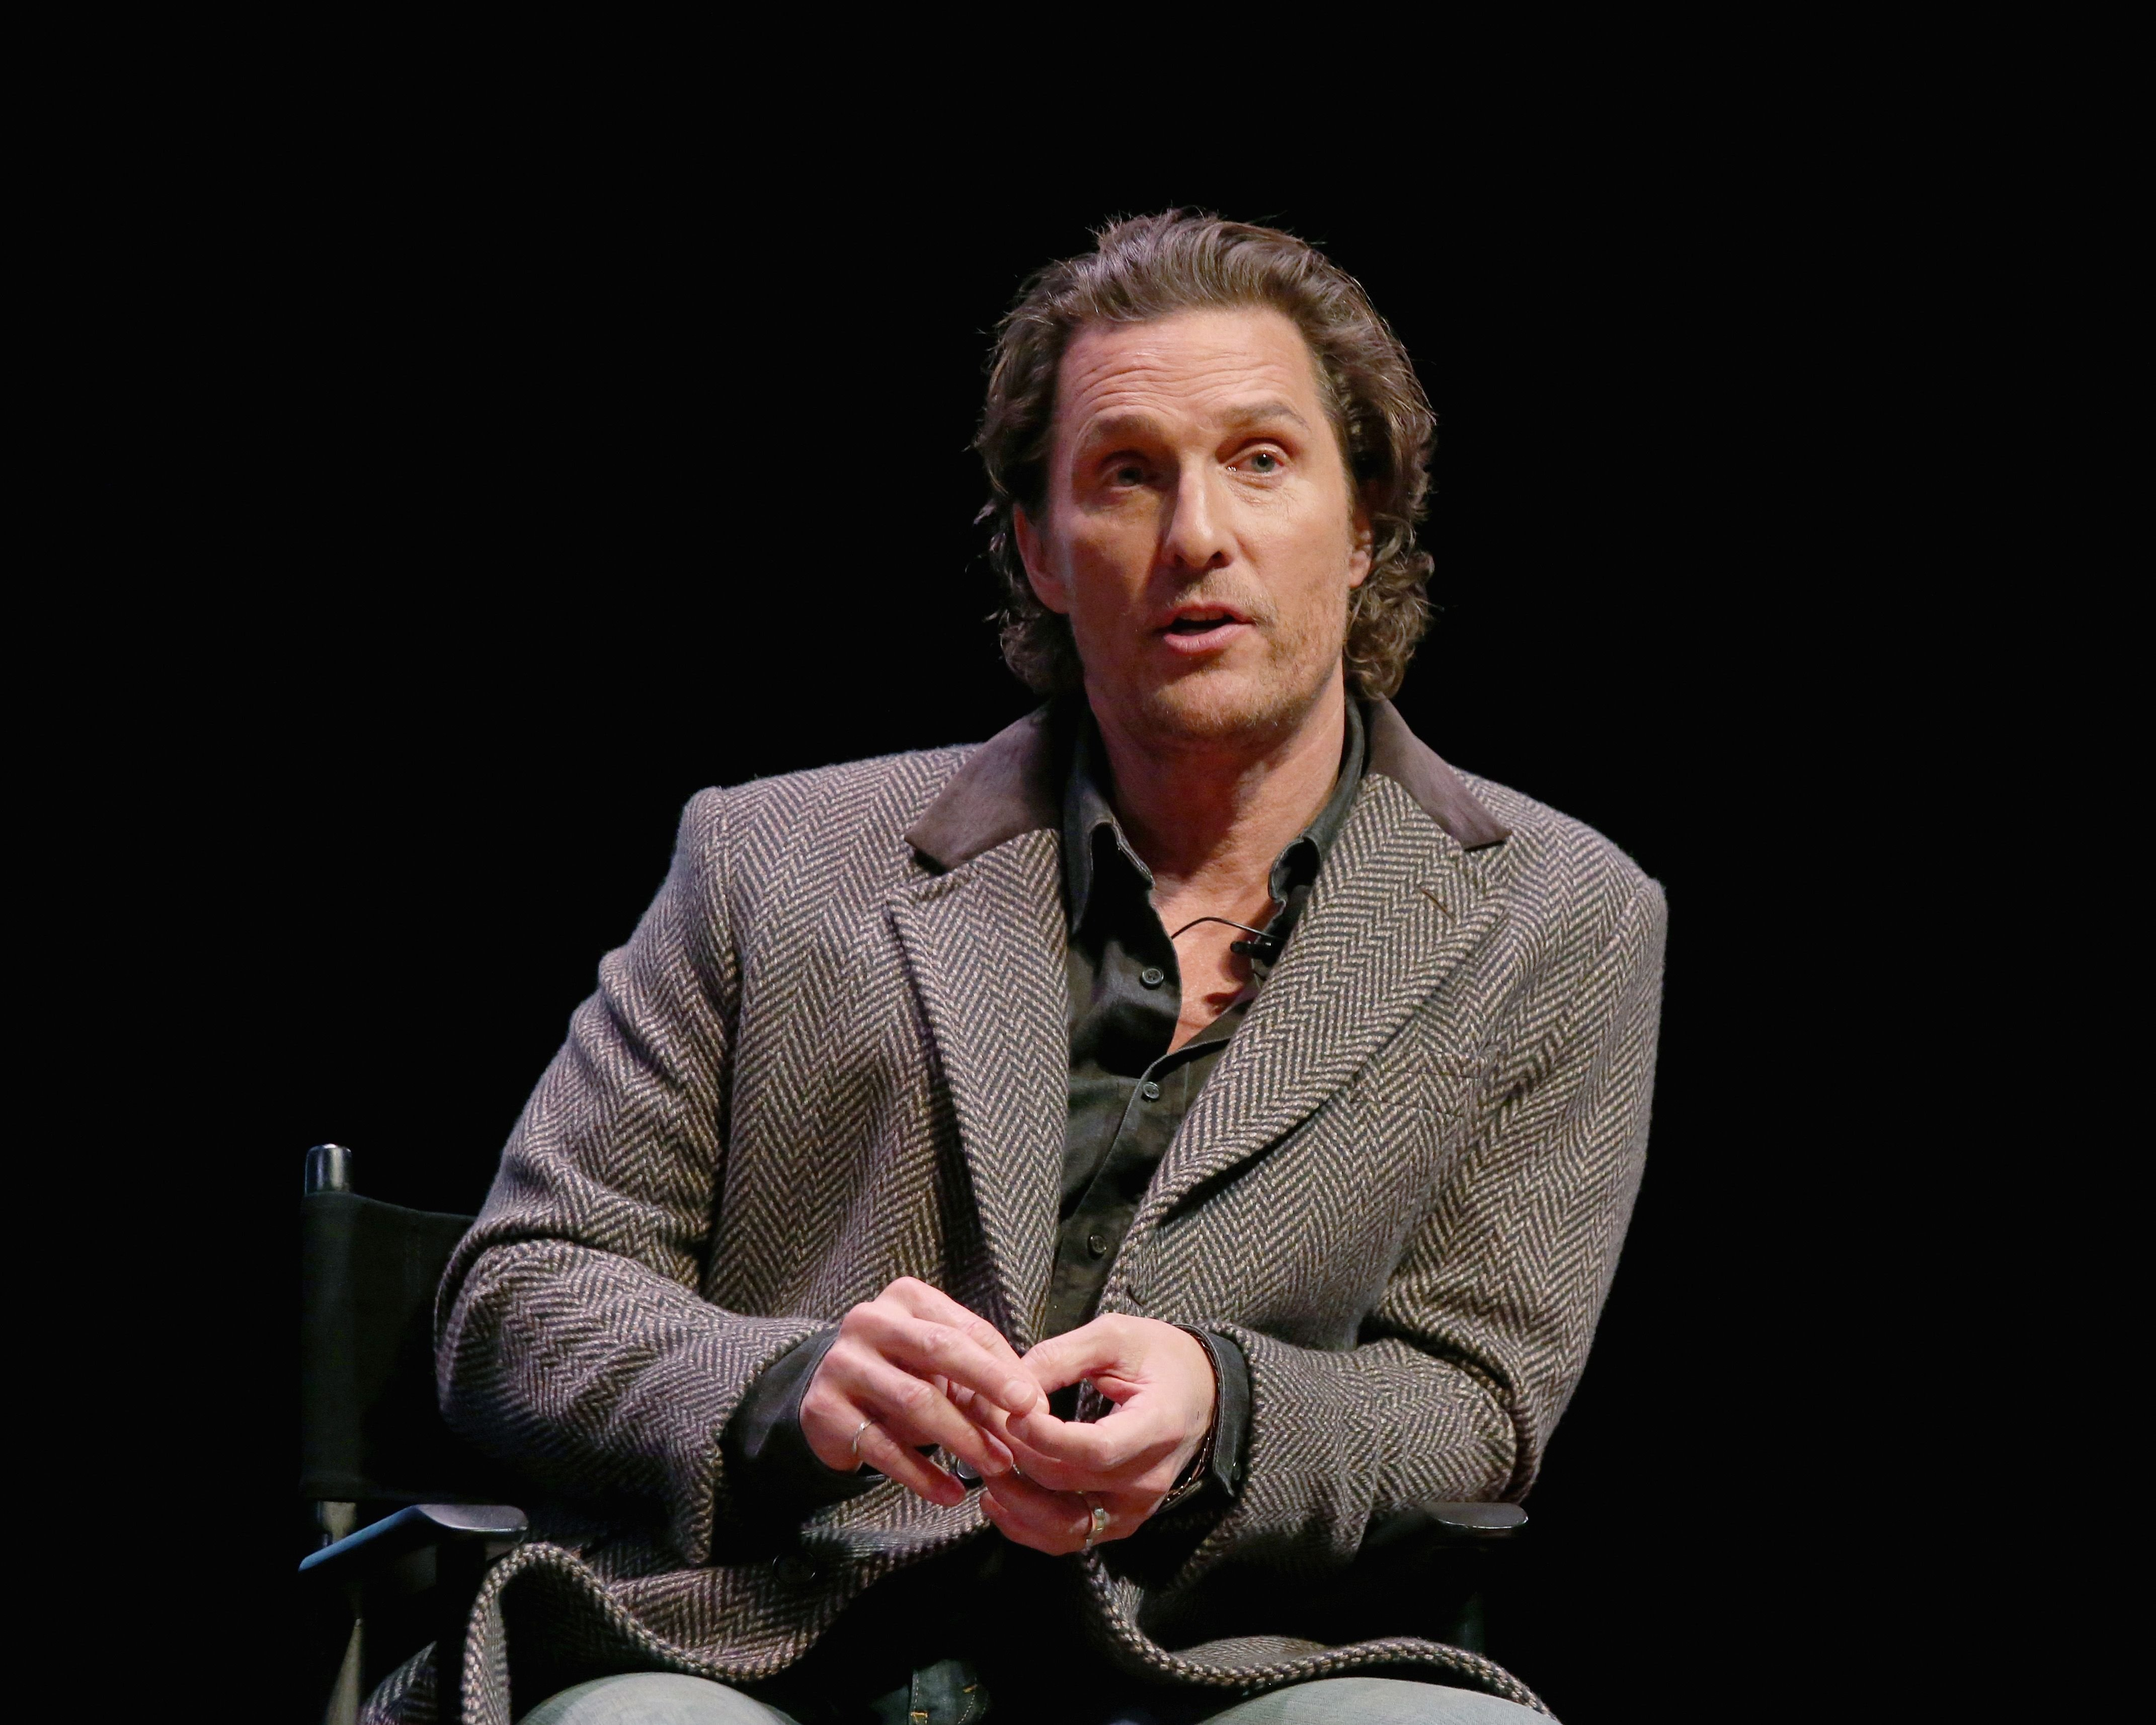 """Matthew McConaughey participates in a Q&A after a special screening of his new film """"The Gentlemen"""" at Hogg Memorial Auditorium at The University of Texas at Austin on January 21, 2020 